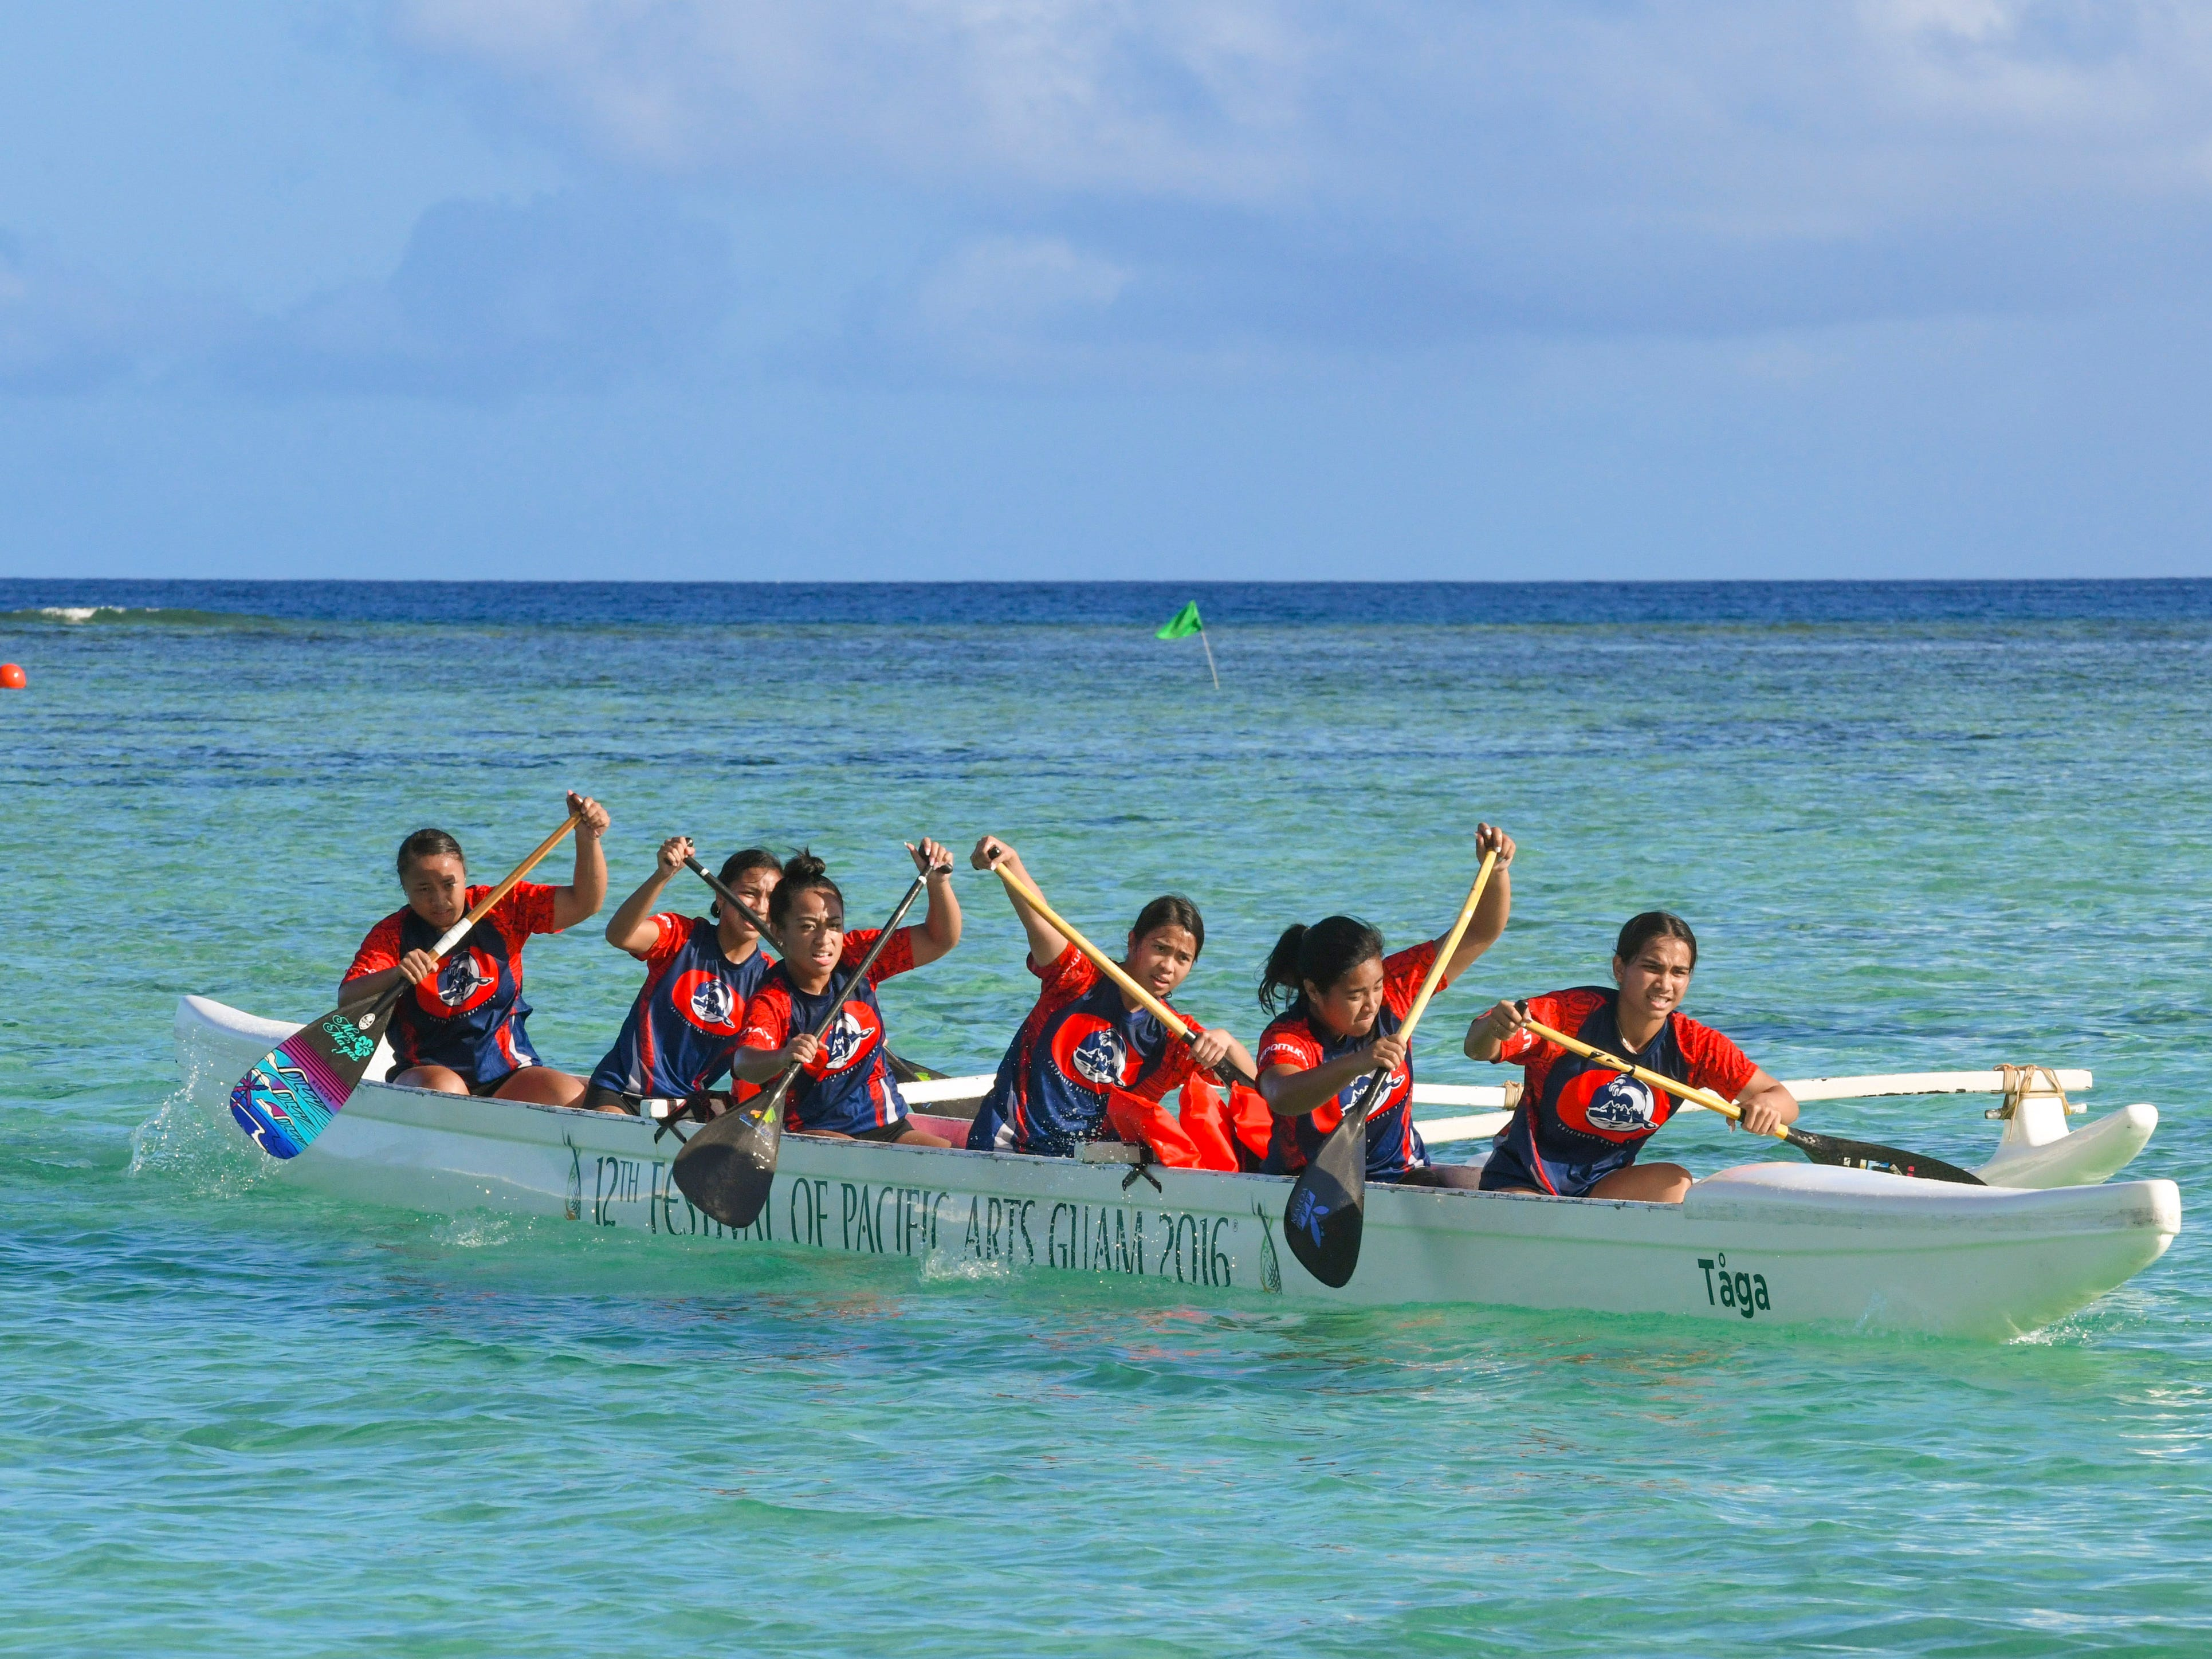 Bulldog paddlers from Okkodo High School prepare to dig into the waters off Matapang Beach as they compete in an IIAAG Paddling competition preliminary race against other teams in Tumon on Saturday, May 11, 2019.